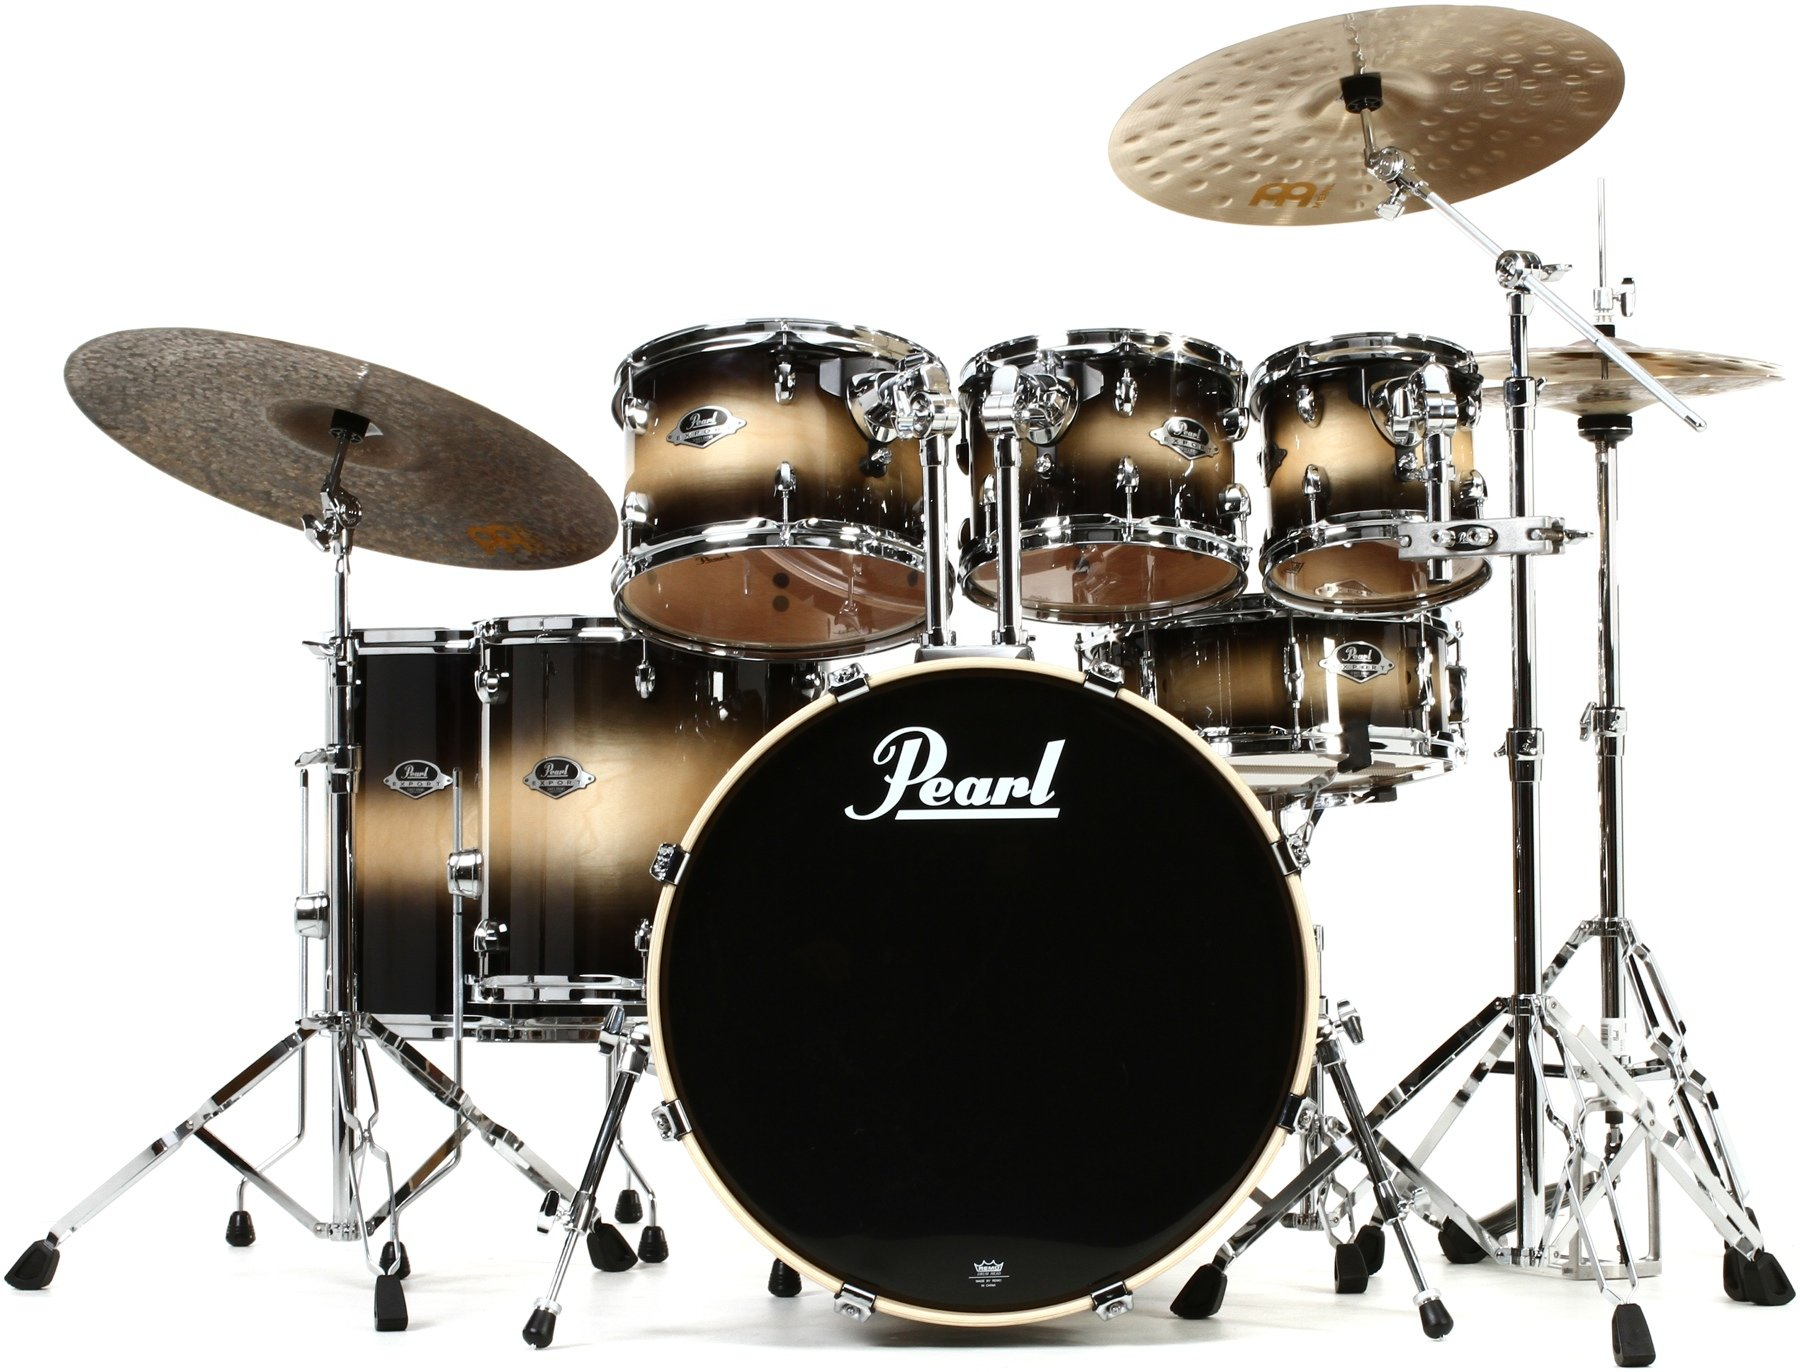 THE RHYTHM IS IN YOU the right gear is essential for setting it free No toys or handmedowns a new complete drum set package with everything you